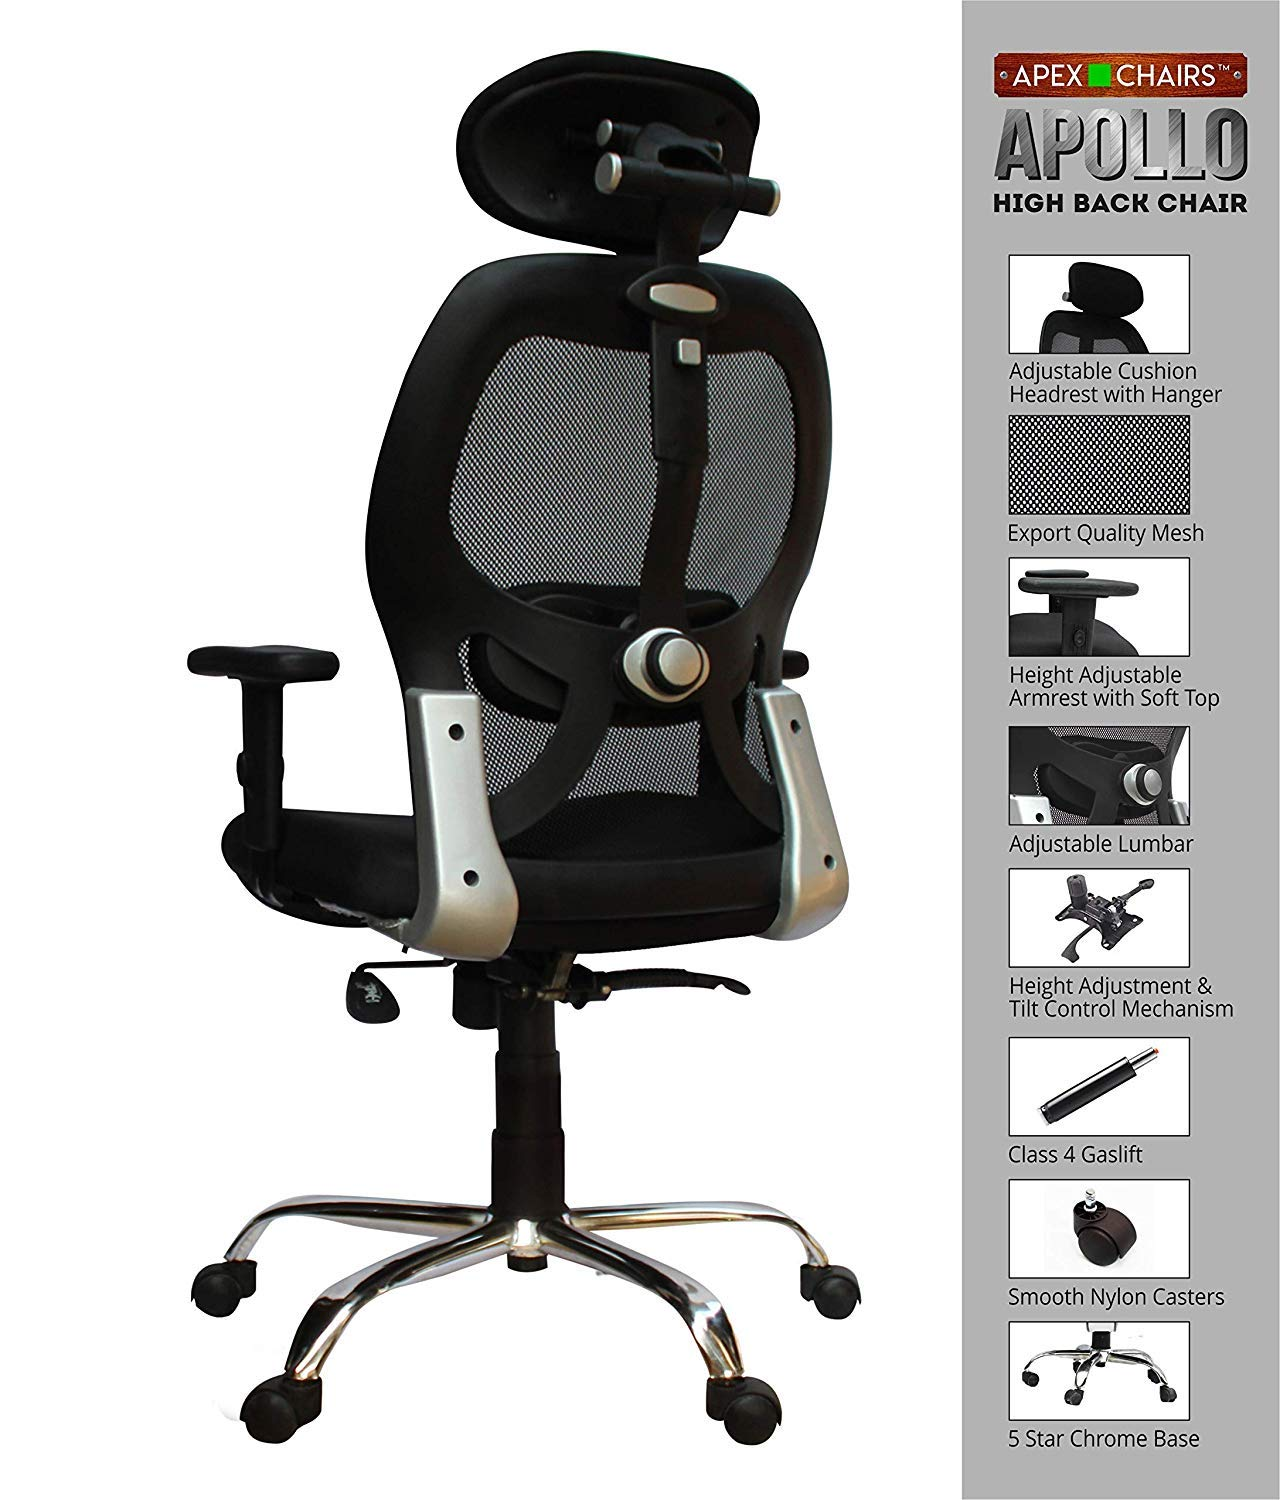 Apex Chairs Apollo Chrome Base High Back Office Chair Adjustable Arms By Savya Home Buy Online In Faroe Islands At Faroe Desertcart Com Productid 69455780